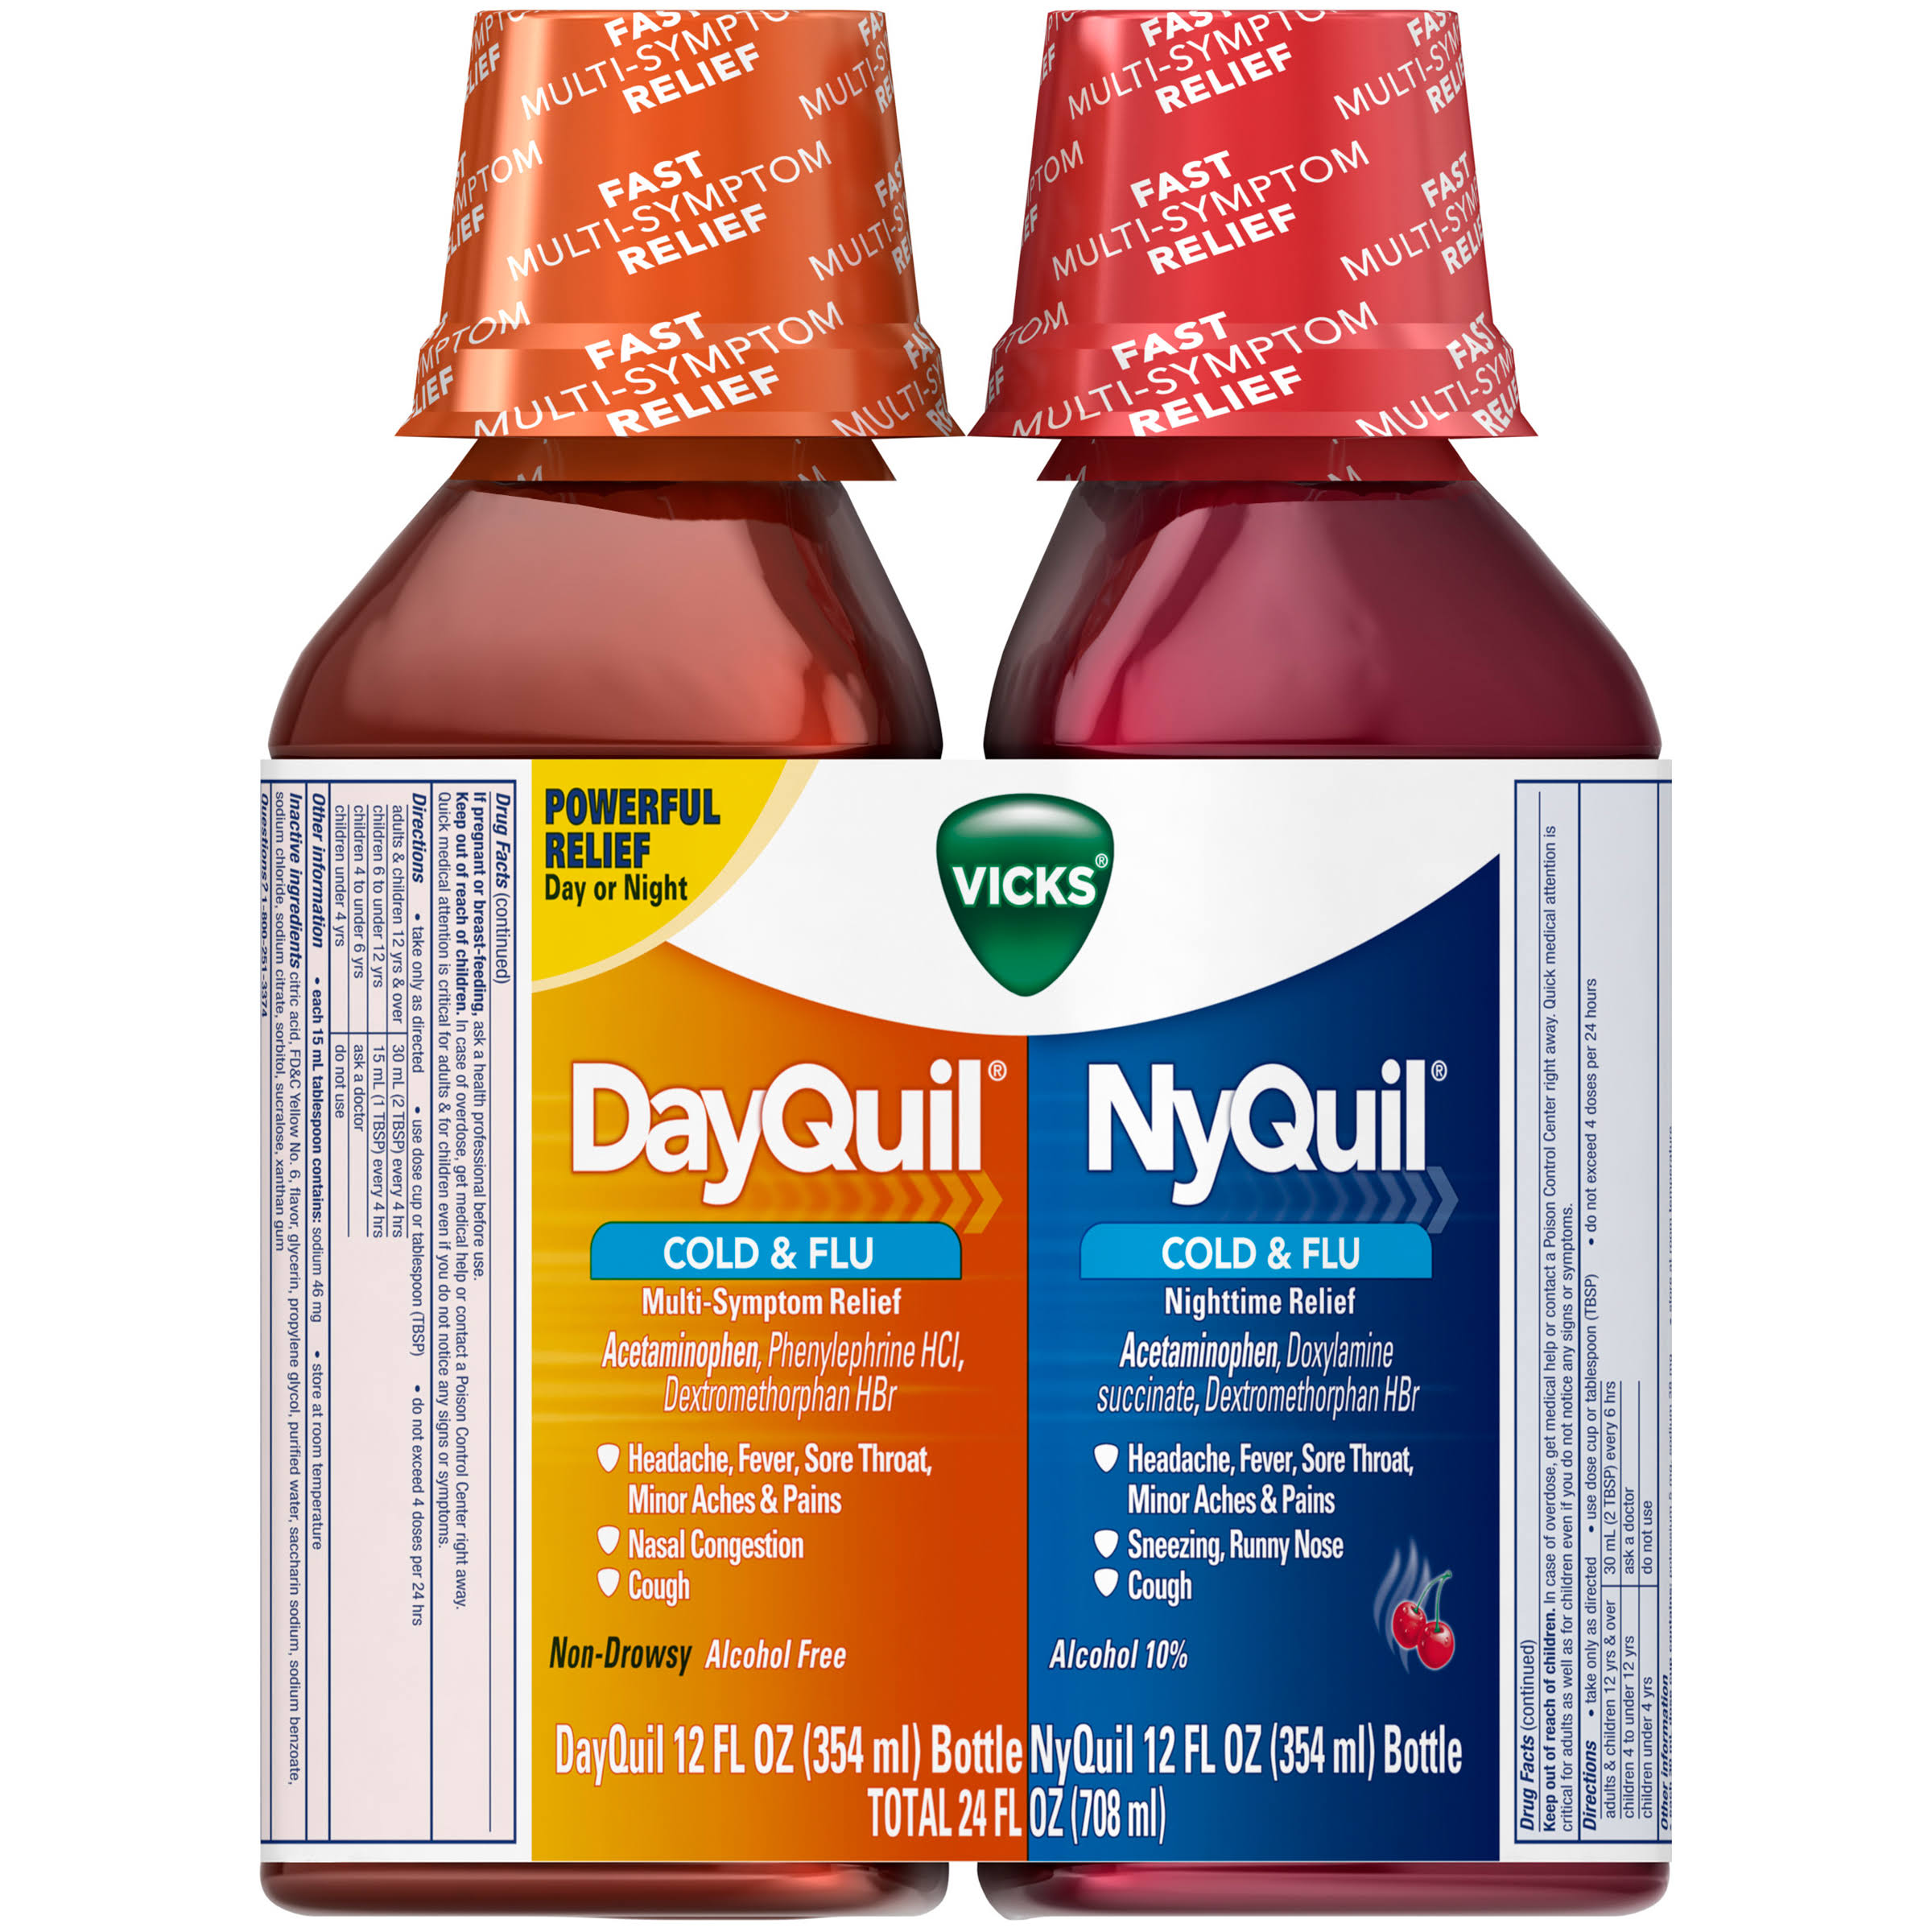 Vicks DayQuil & NyQuil Cold & Flu Liquid Medicine Combo Pack - 12oz, 2pcs